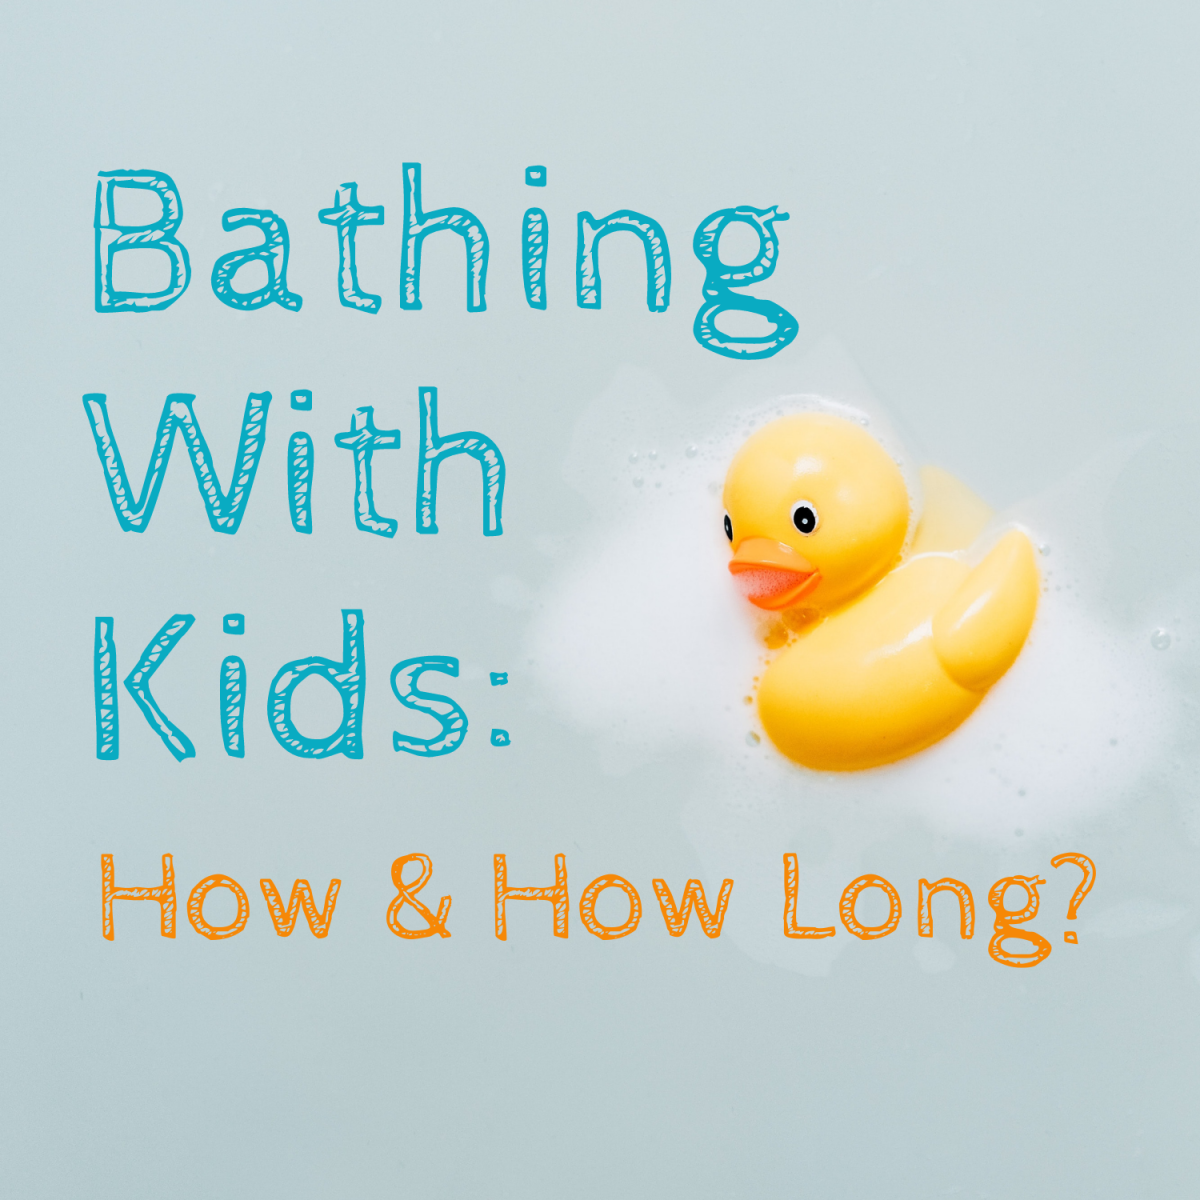 Learn how to shower or bathe with your kids, how to make it a fun learning experience, and when to stop.